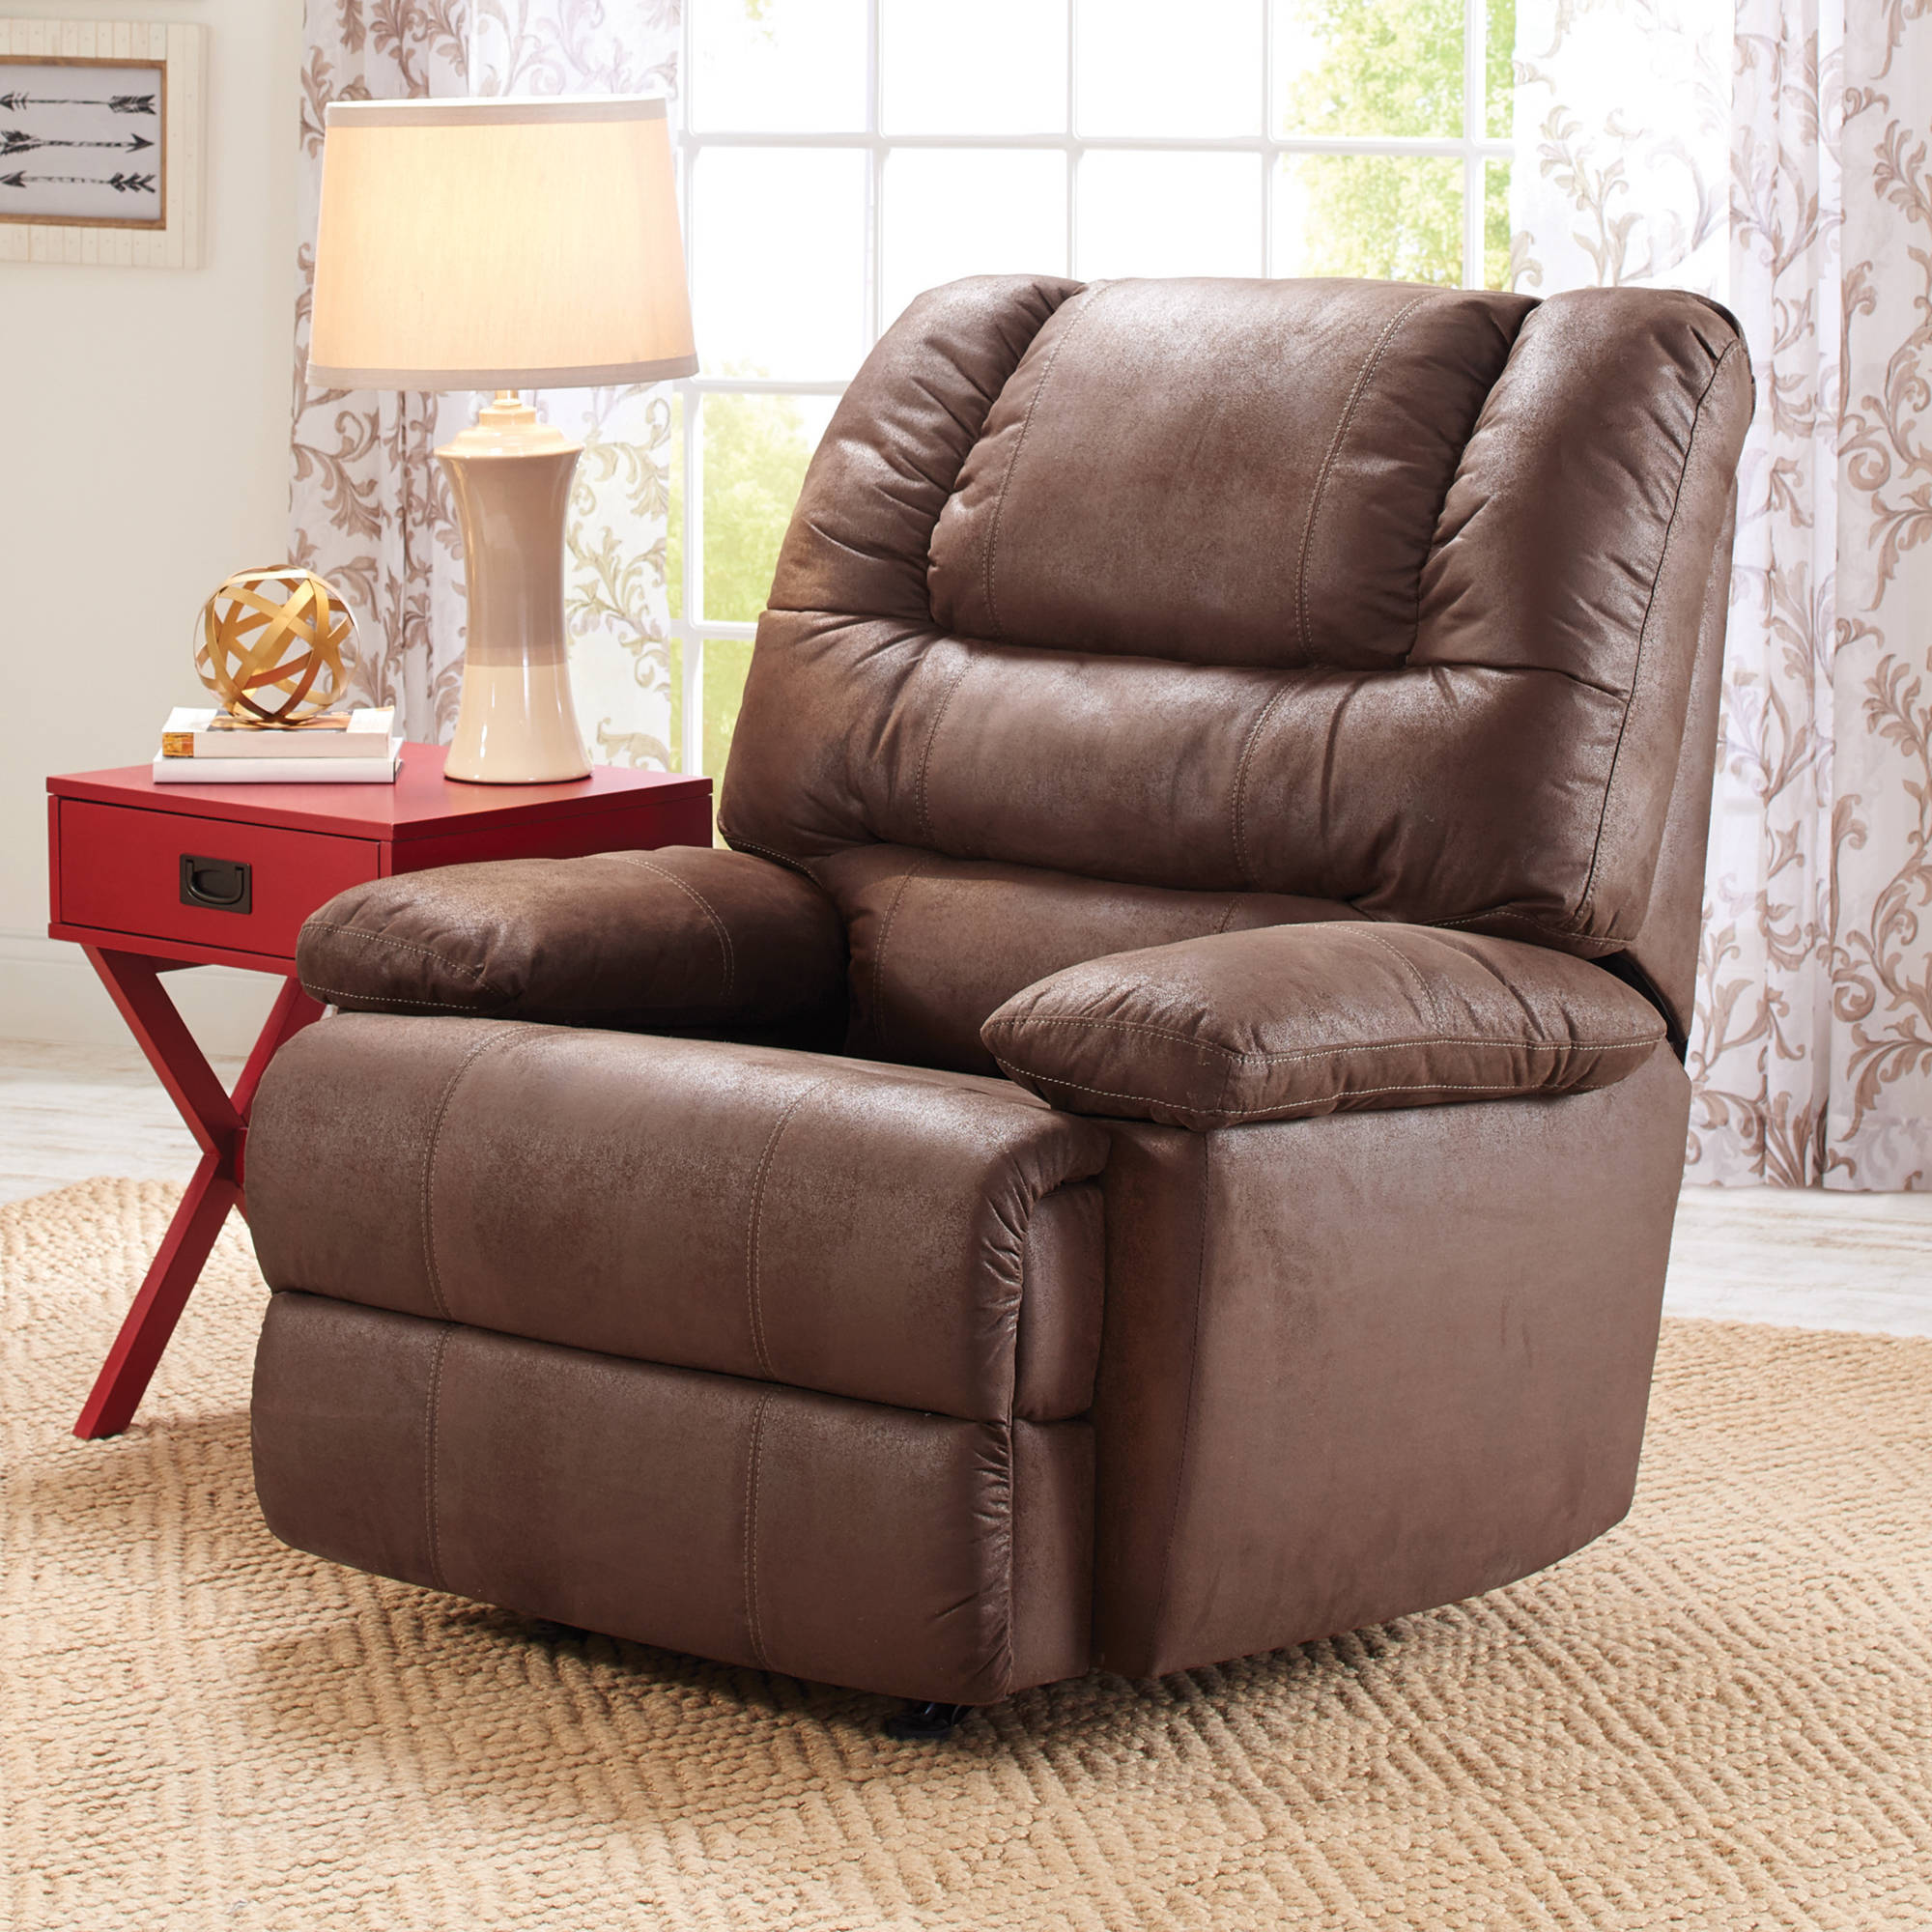 Better Homes and Gardens Deluxe Recliner